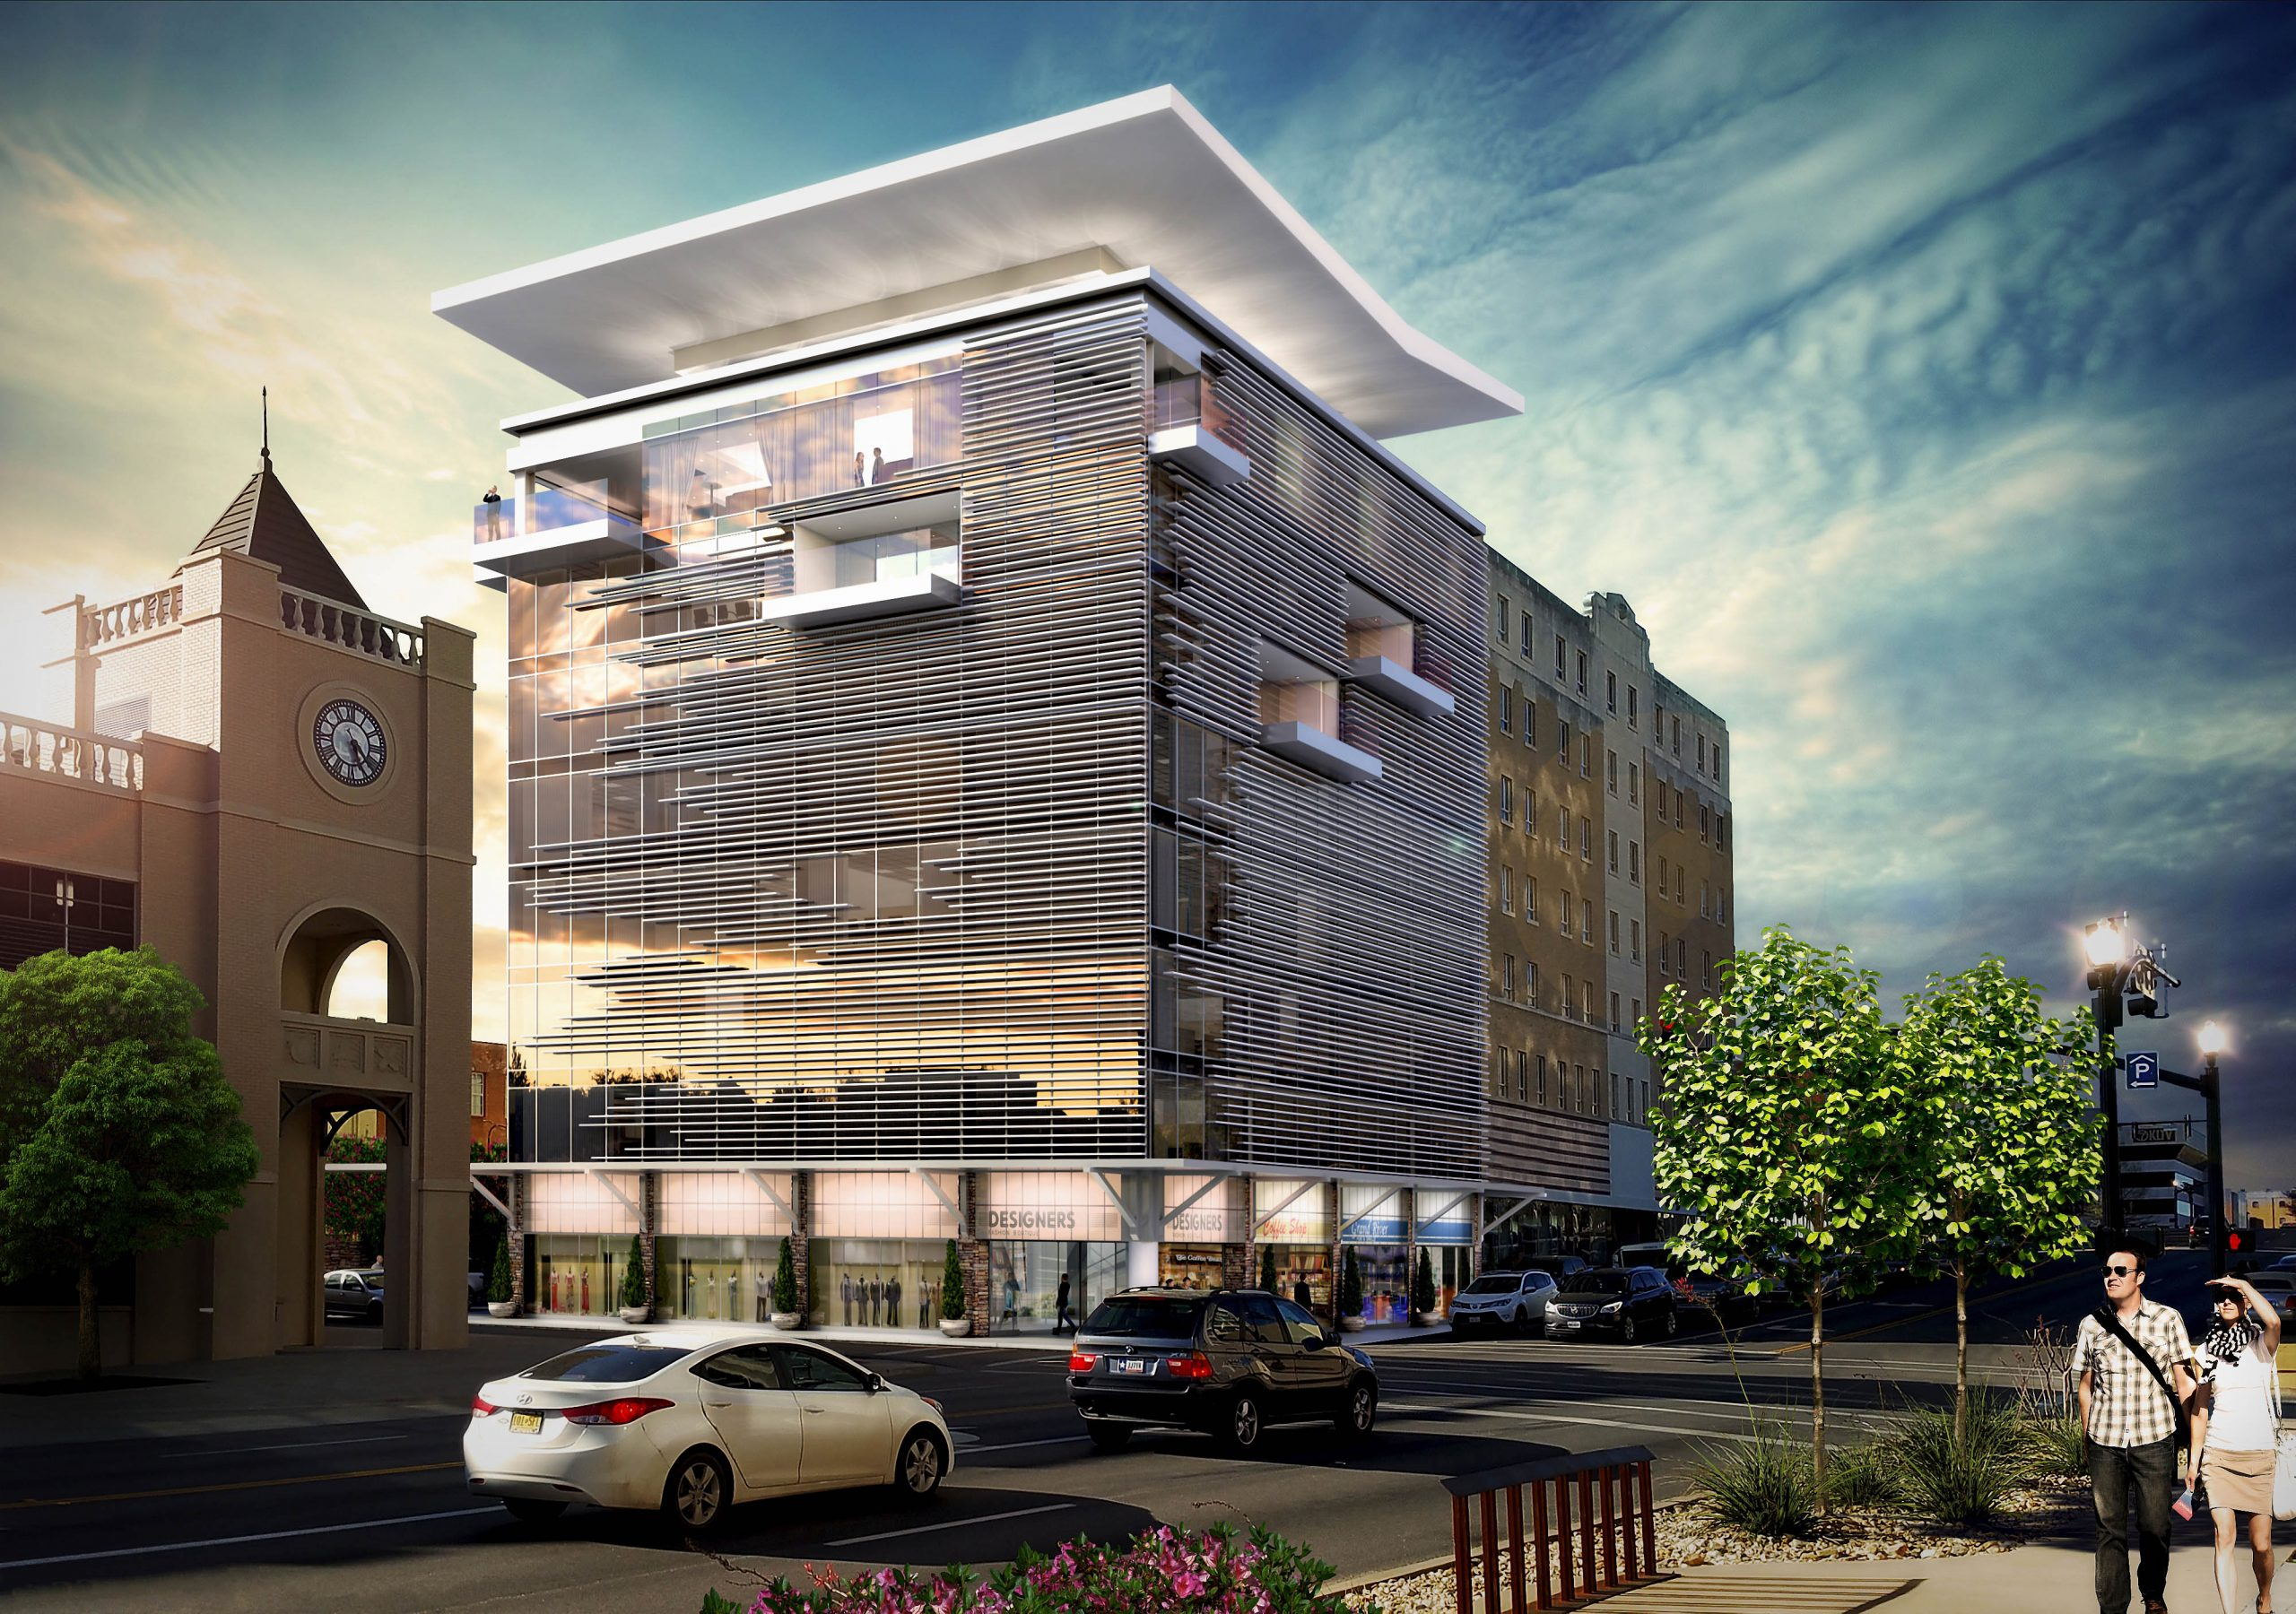 concept for downtown tyler mixed use building - mixed use multi story building tyler texas - downtown tyler architect - butler architectural group